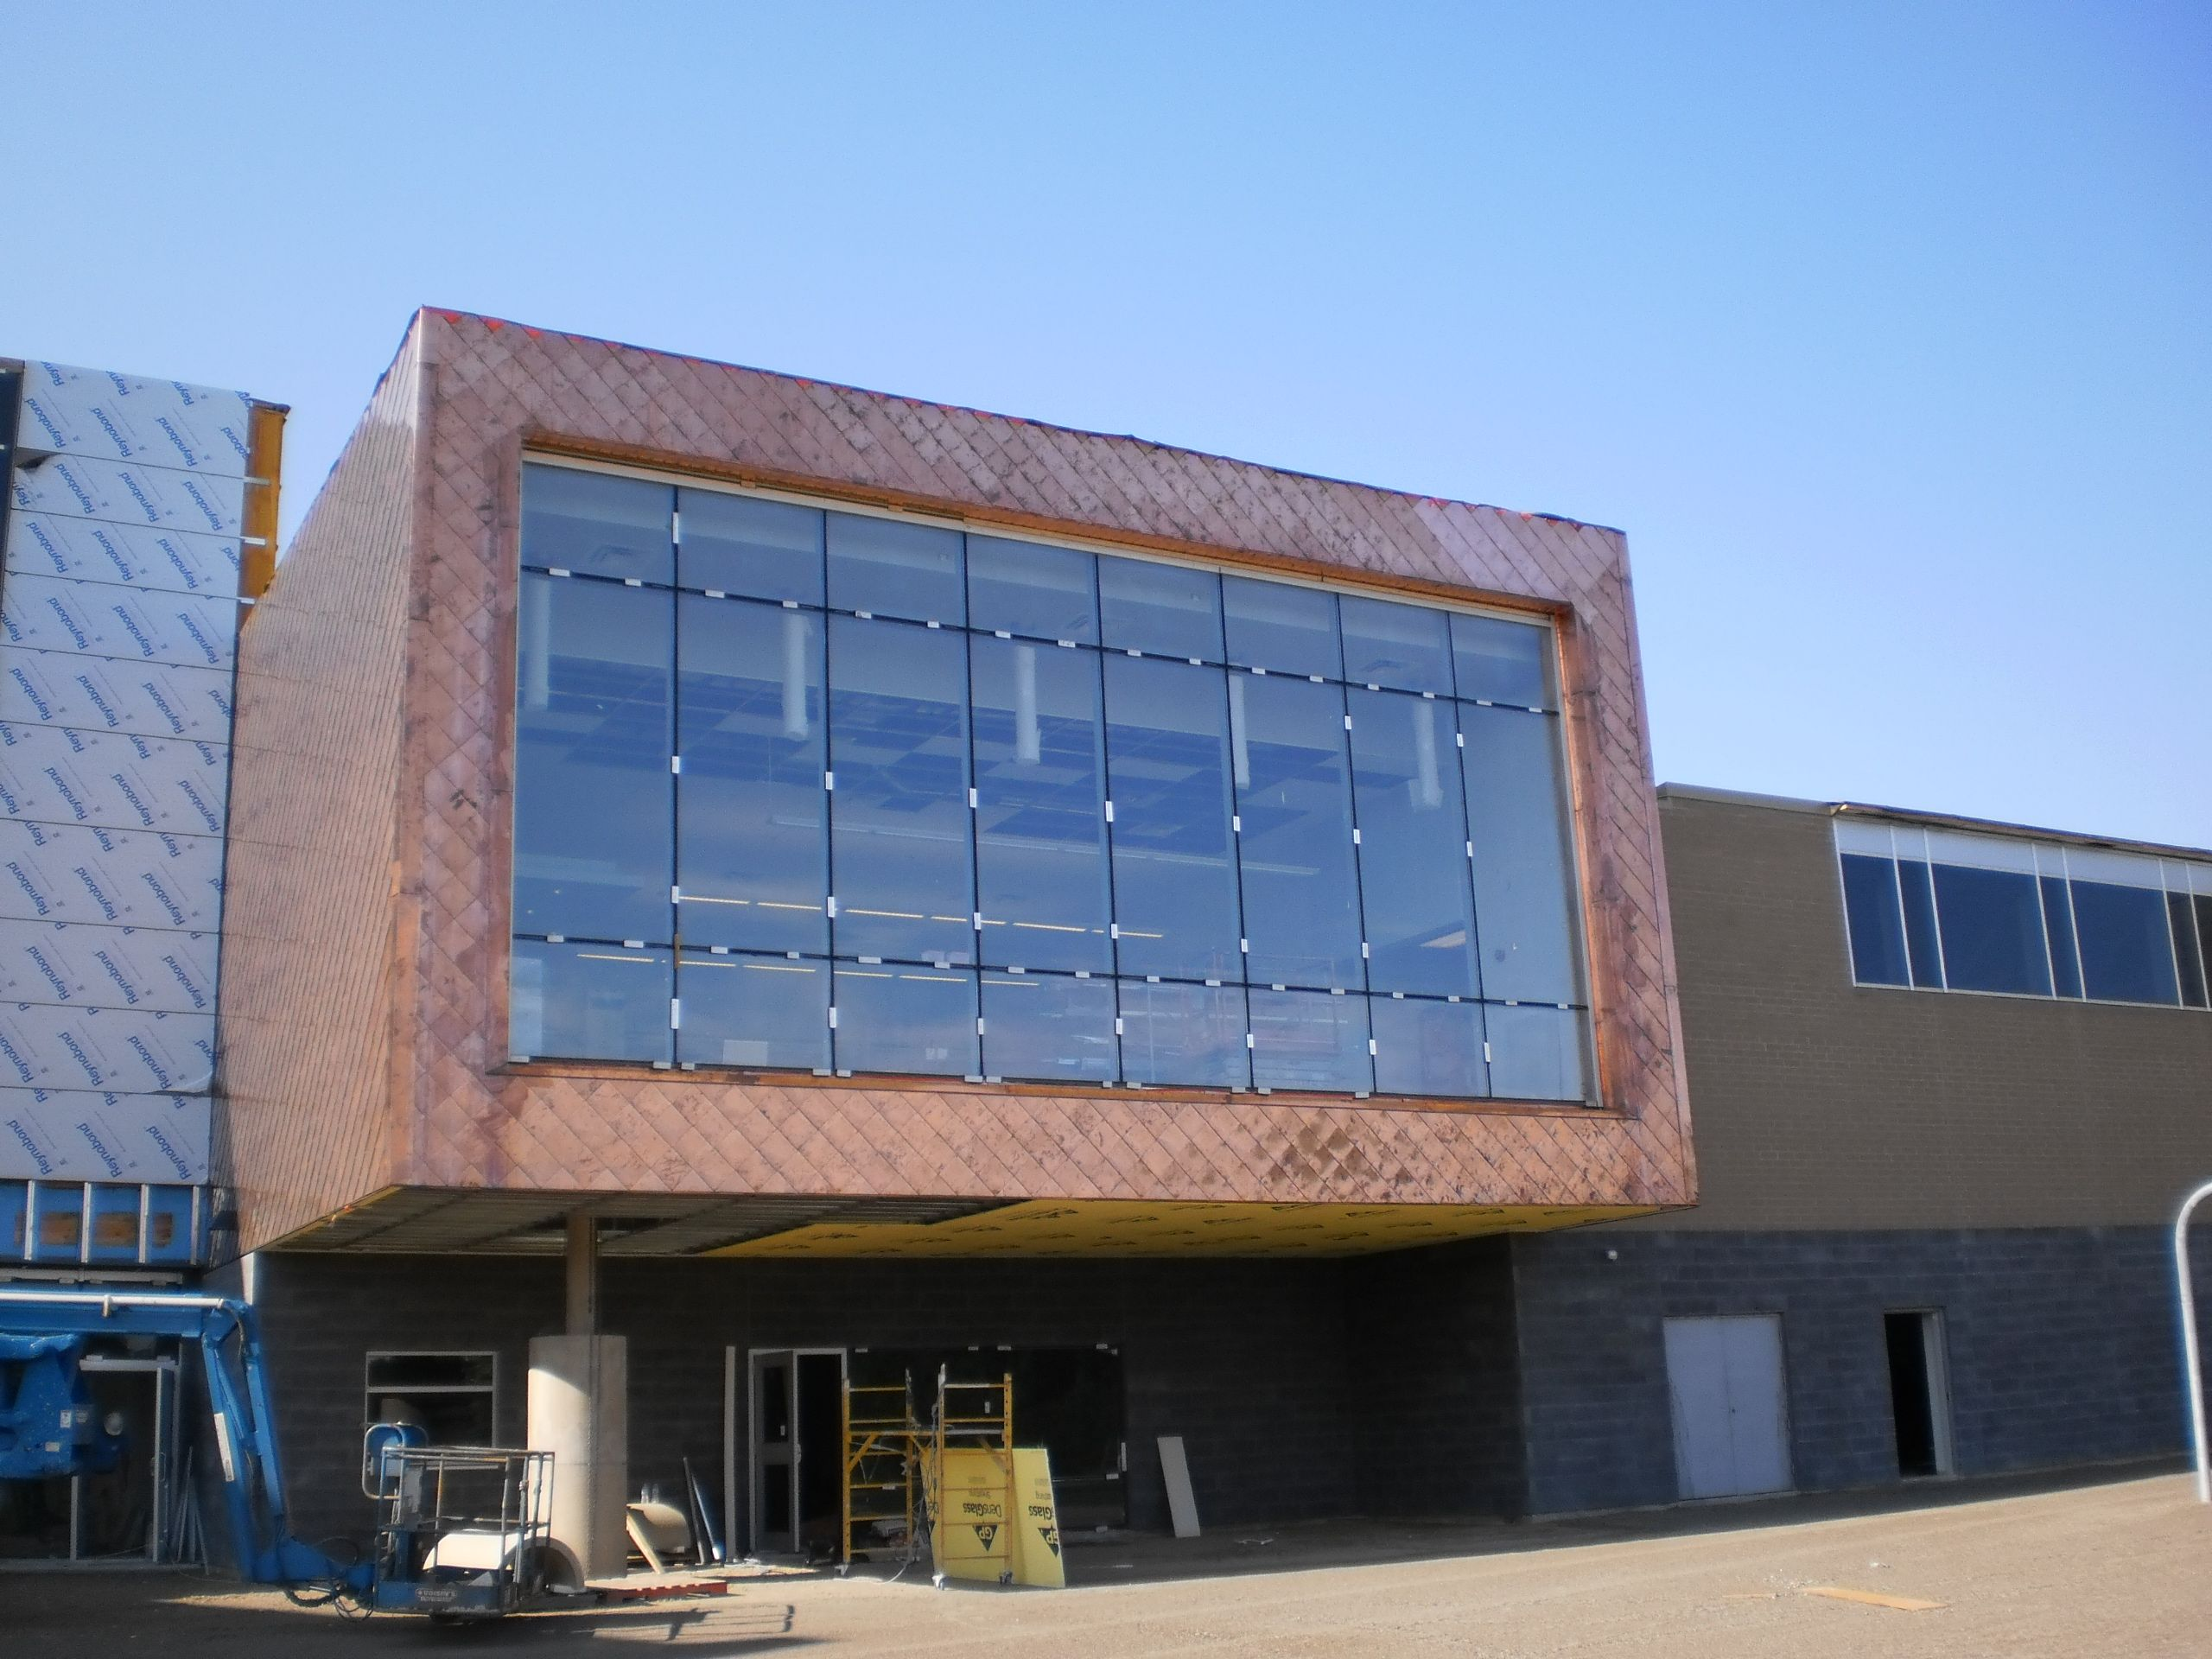 Diamond Style Copper Sheet Metal Wall Panels Fabricated By Heather Little Canada At Their Markham Location Were U Metal Wall Panel Wall Panels Wall Systems